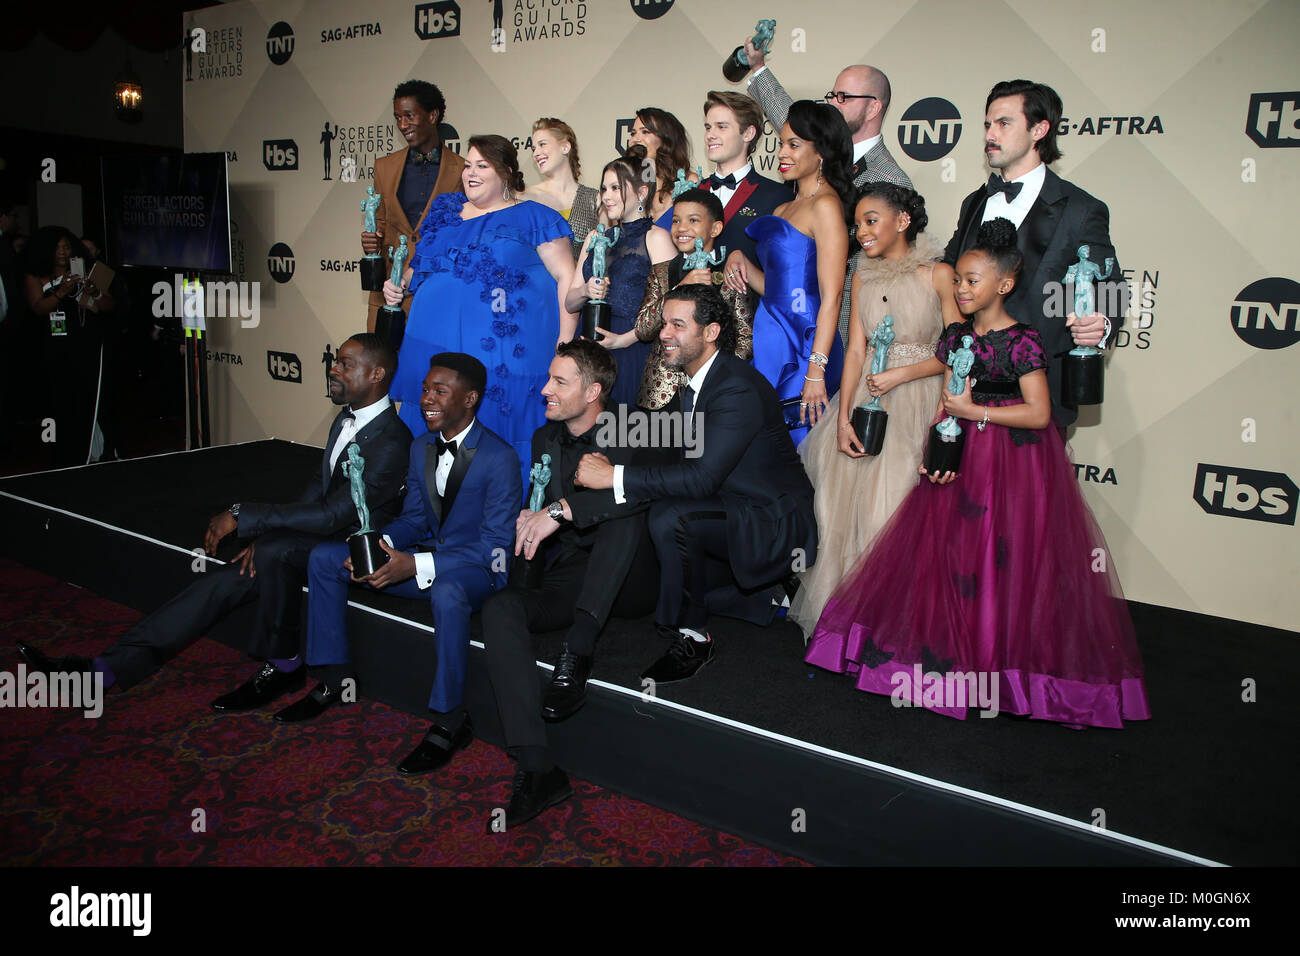 Los Angeles, Ca, USA  21st Jan, 2018  Cast of 'This Is Us